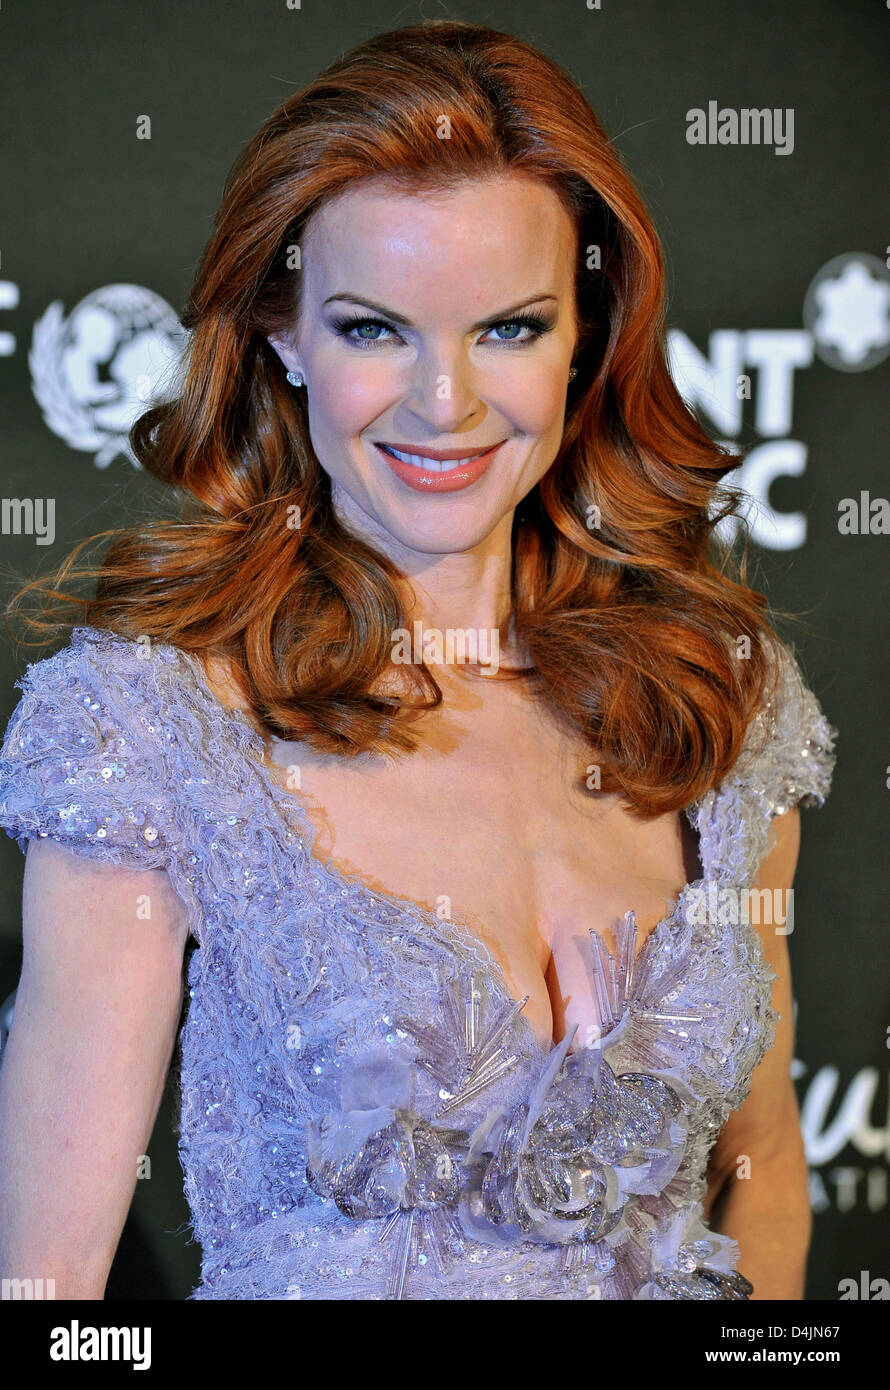 Cleavage Marcia Cross nude (24 photos), Pussy, Hot, Feet, panties 2017